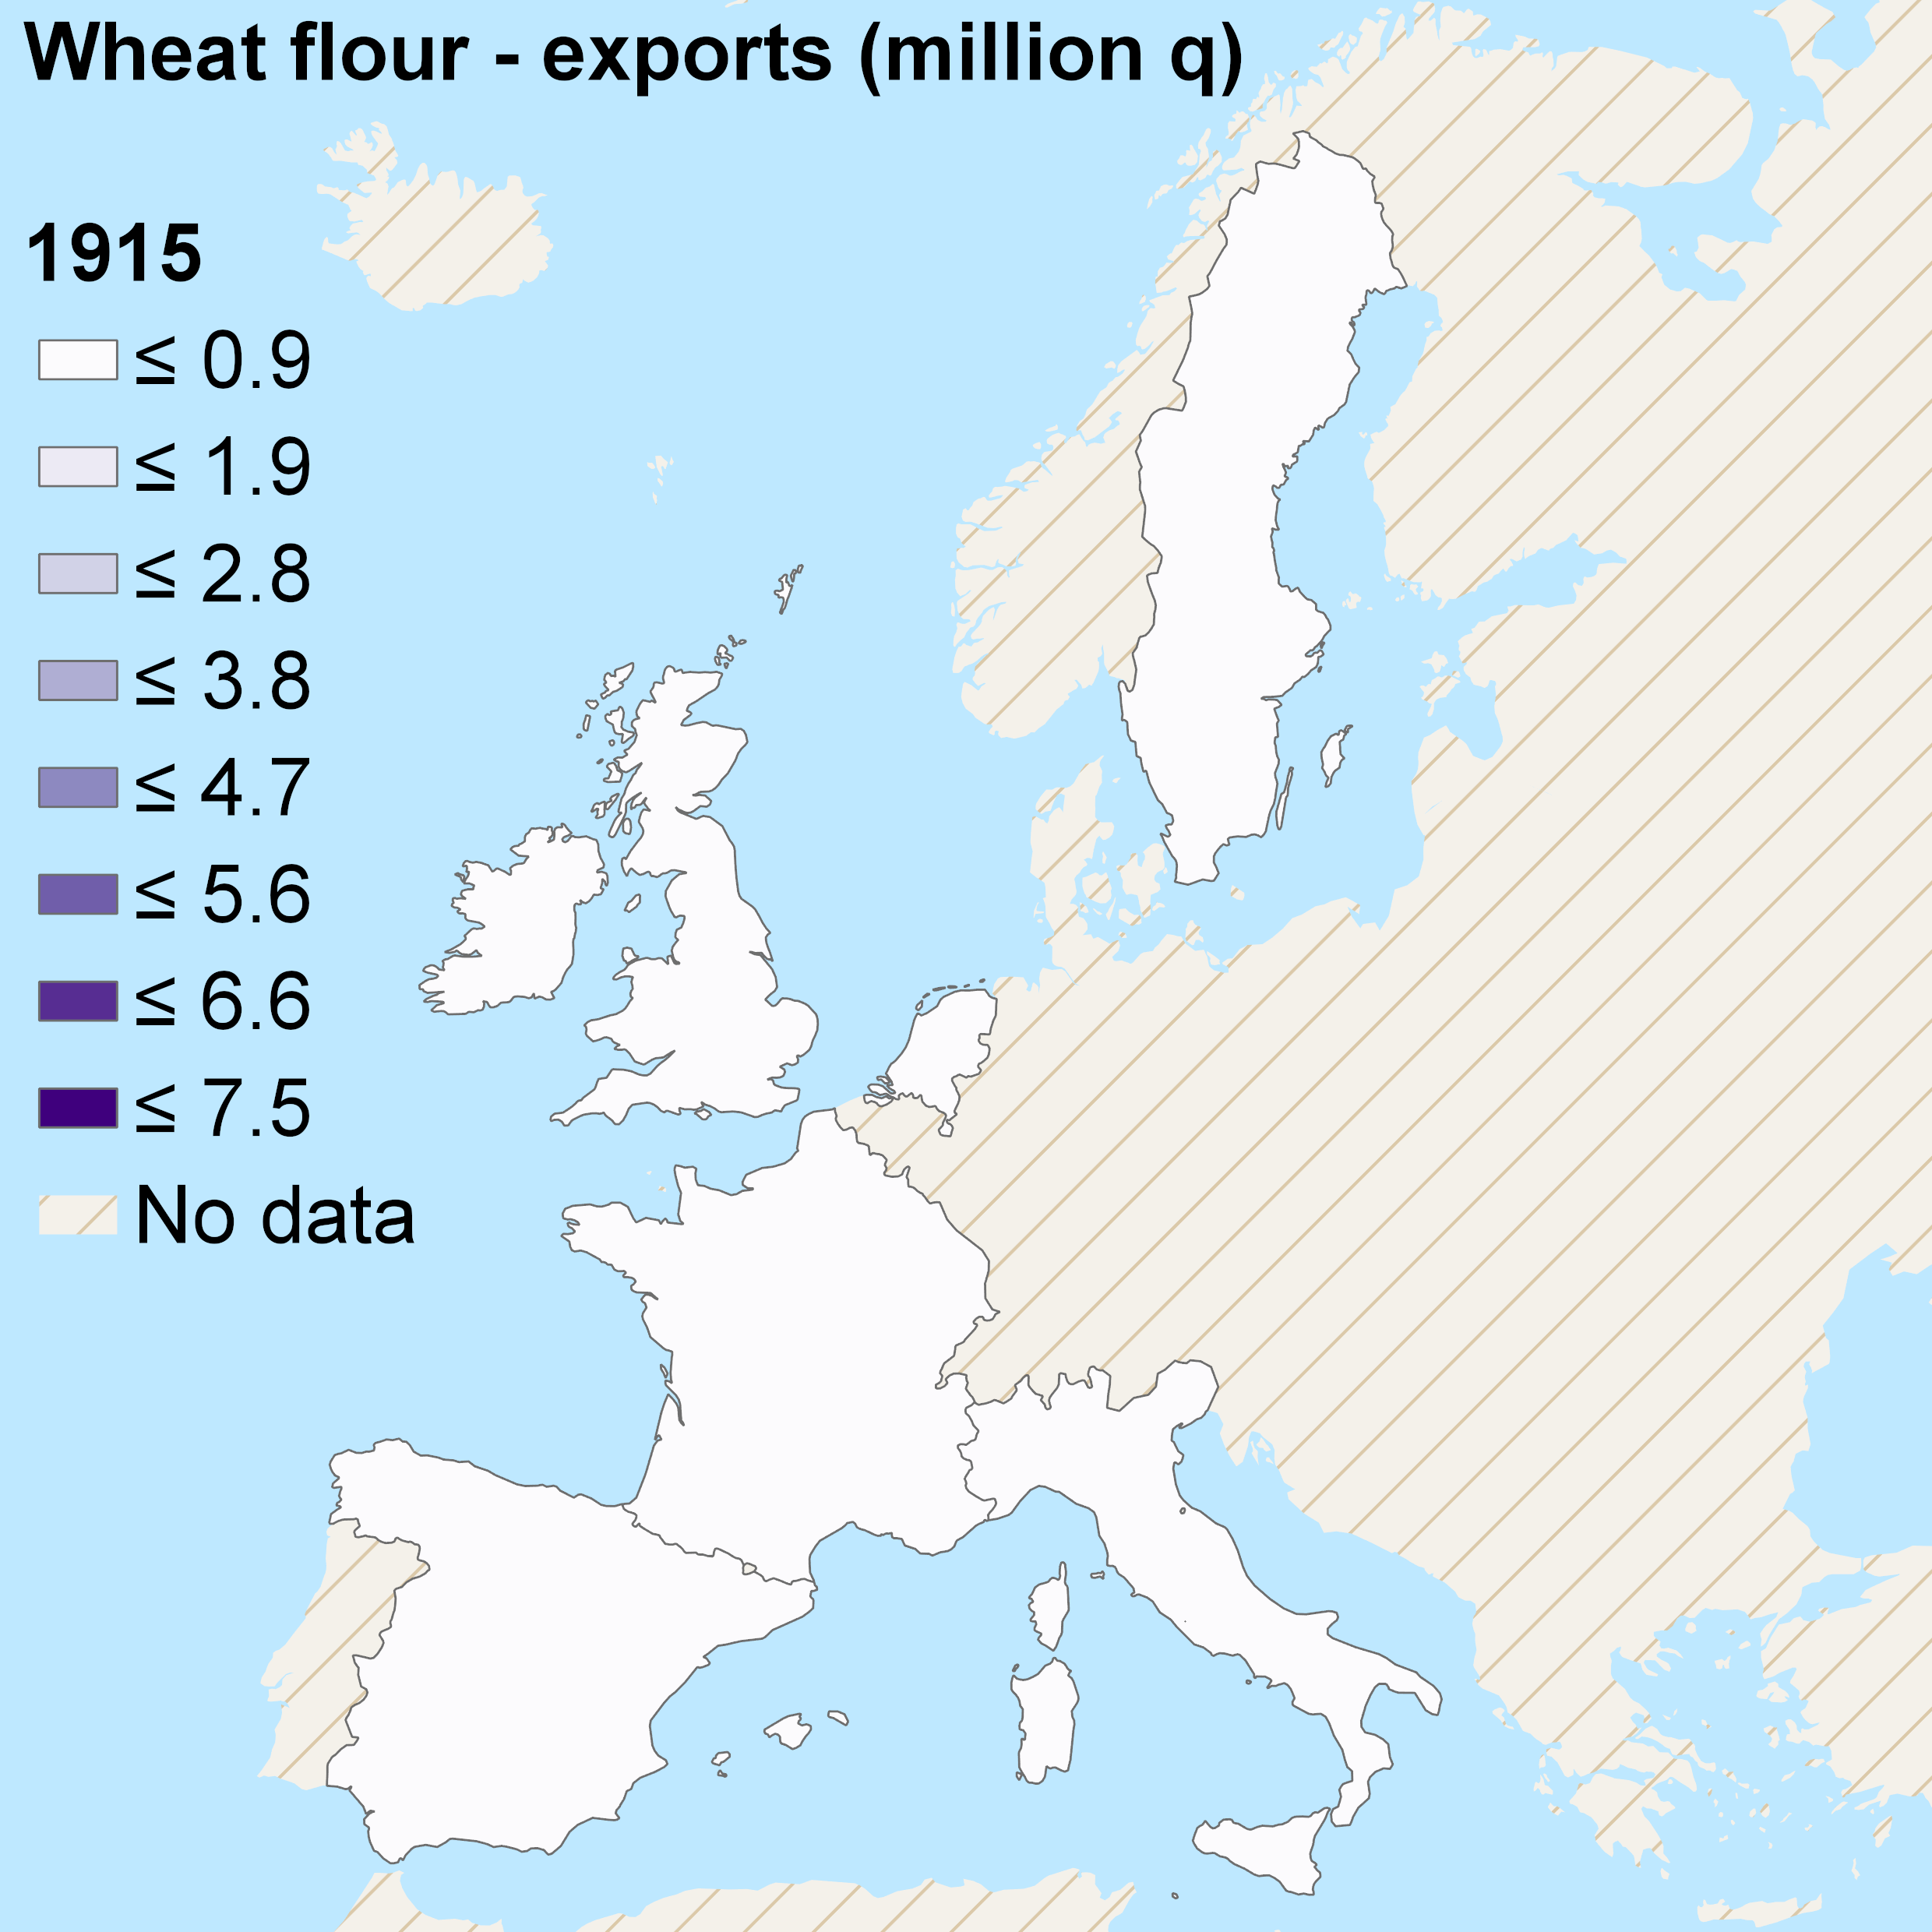 wheat-flour-exports-1915-v2